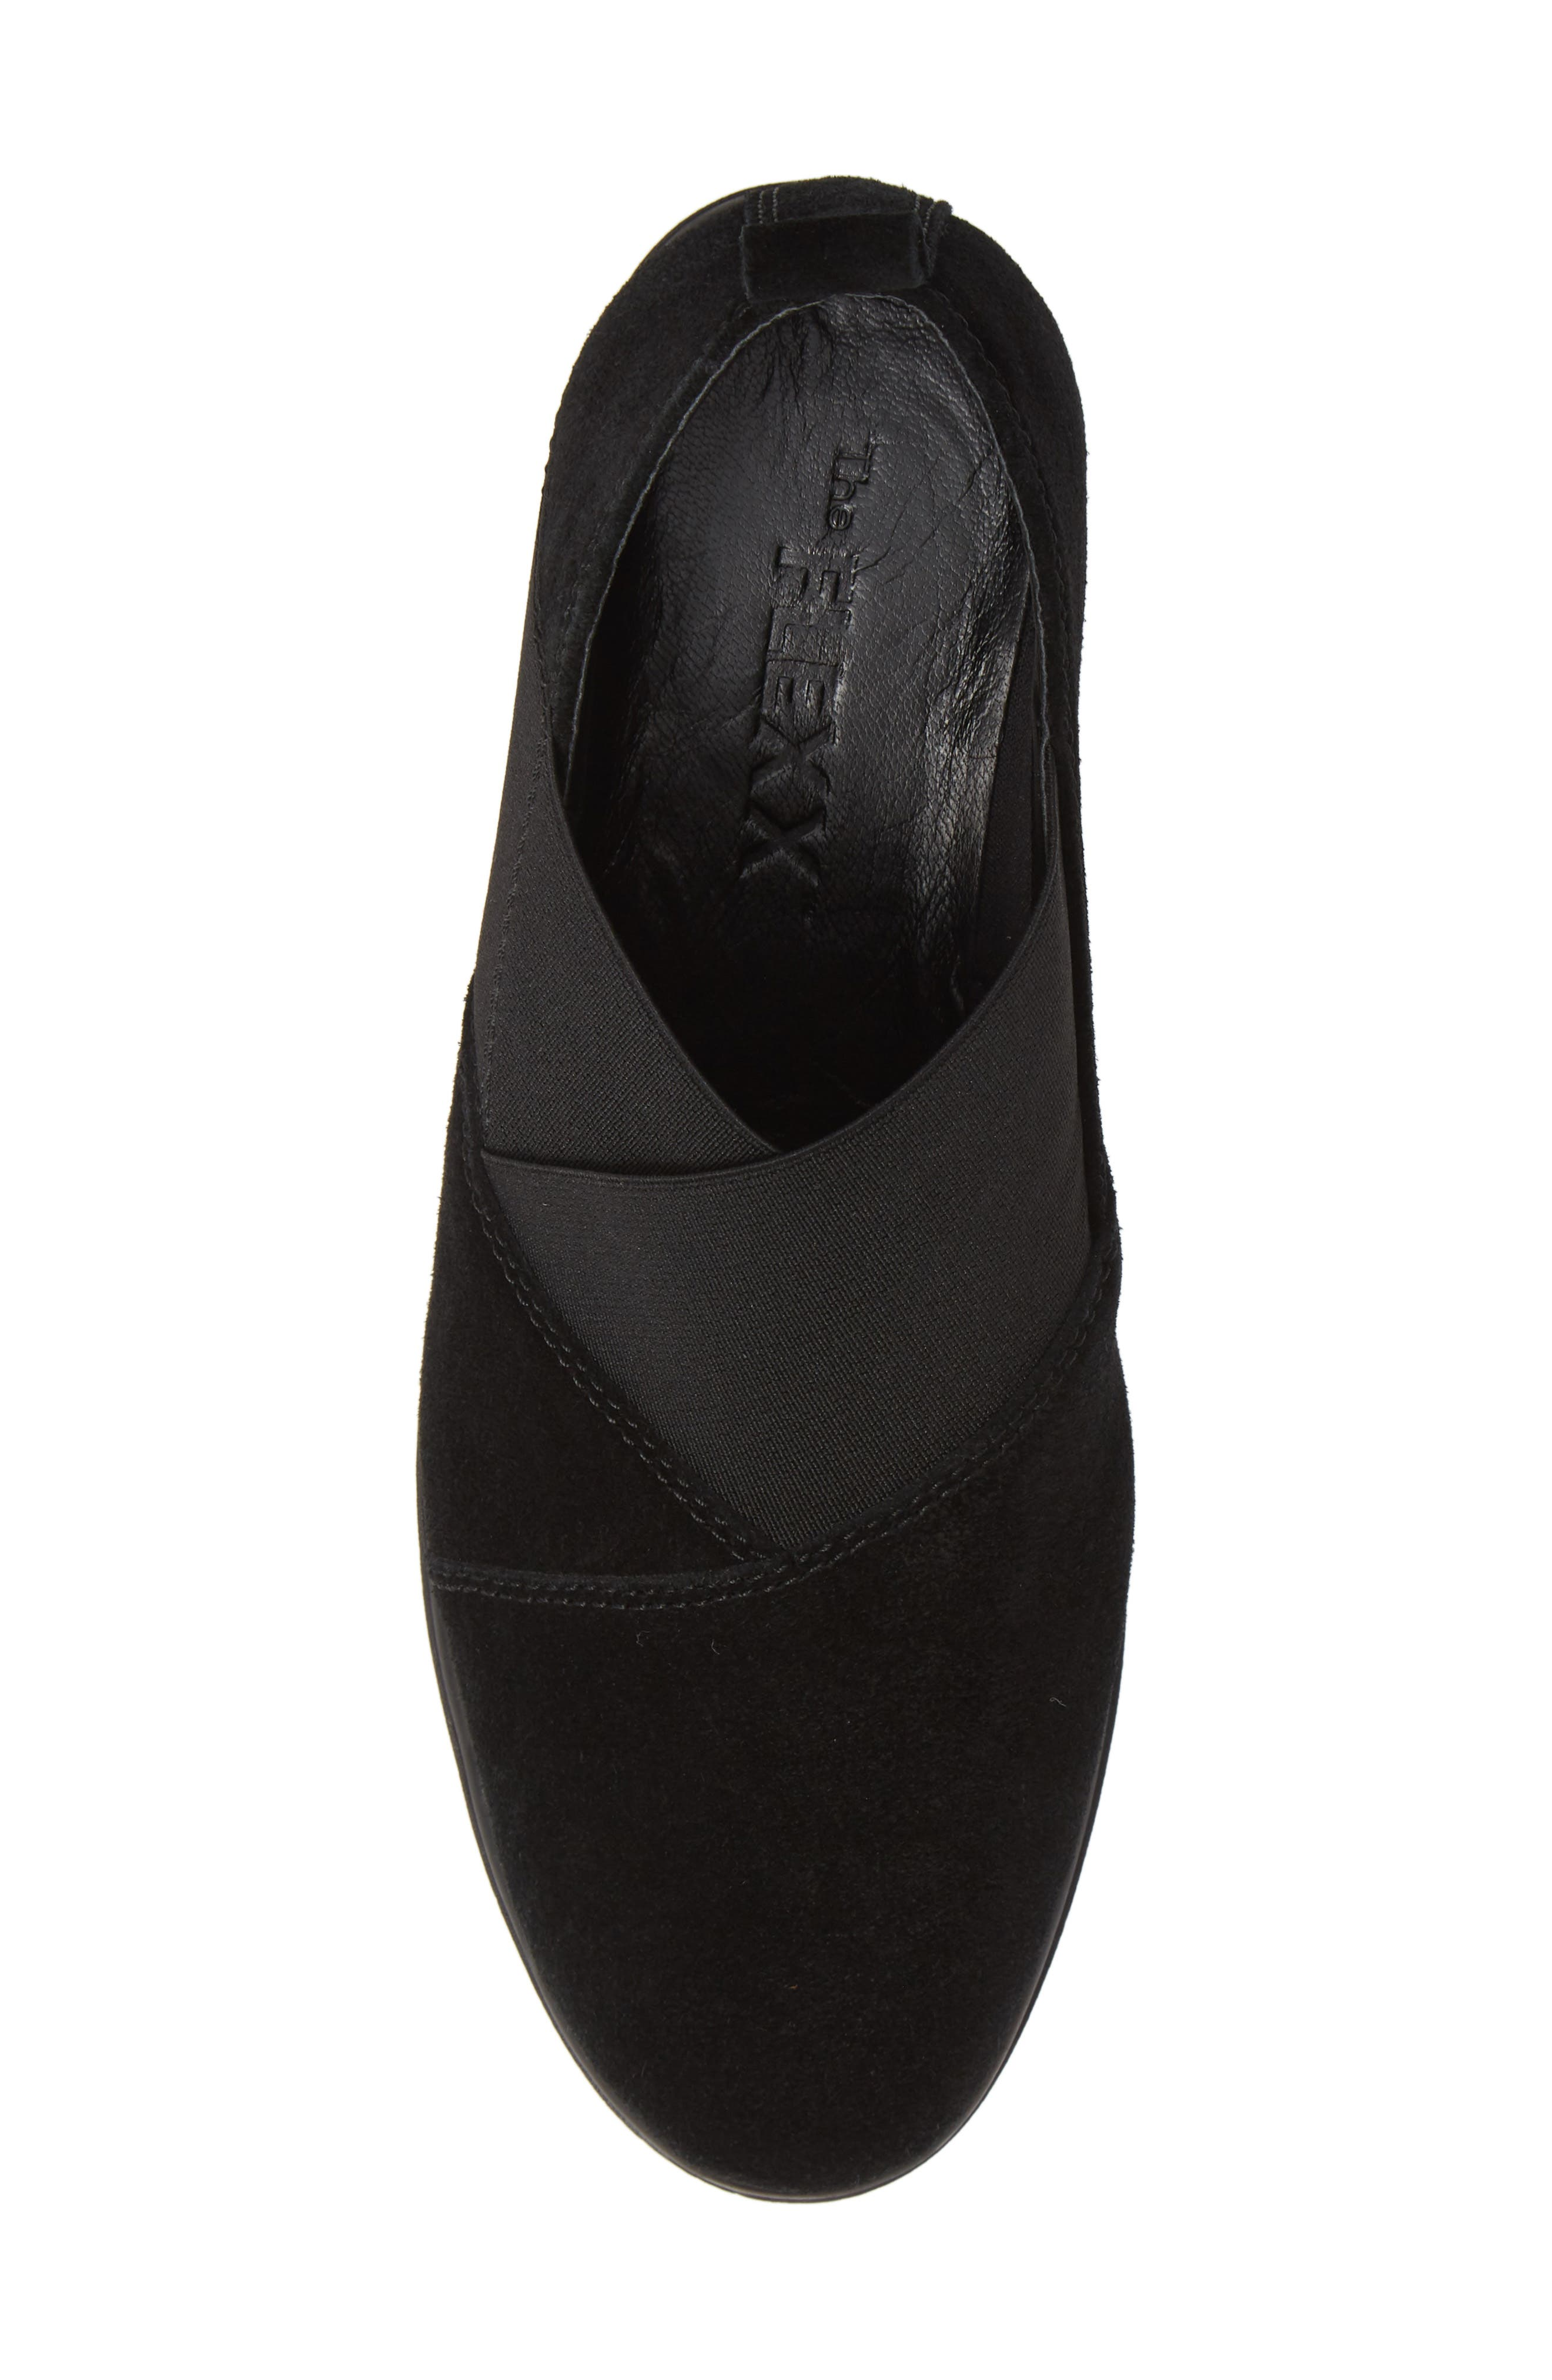 Crosstown Slip-On Shoe,                             Alternate thumbnail 5, color,                             BLACK SUEDE